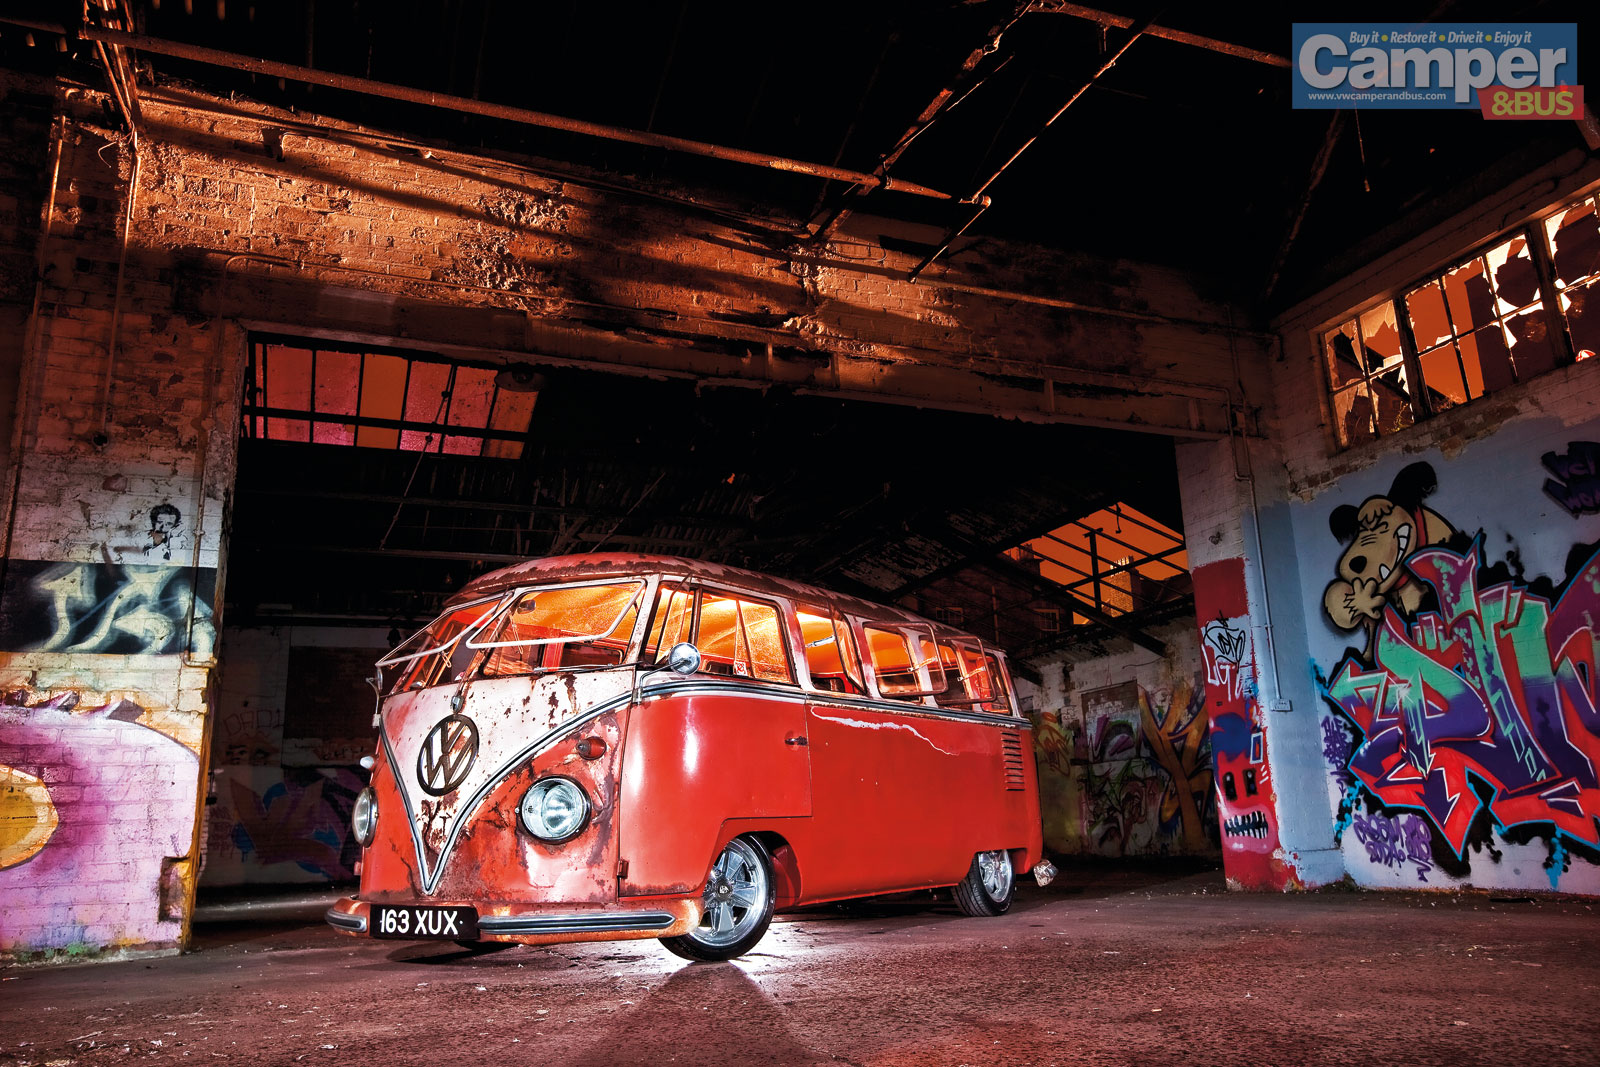 Used Vans For Sale >> Camper&Bus Wallpaper March 2011 - VW Camper and Bus